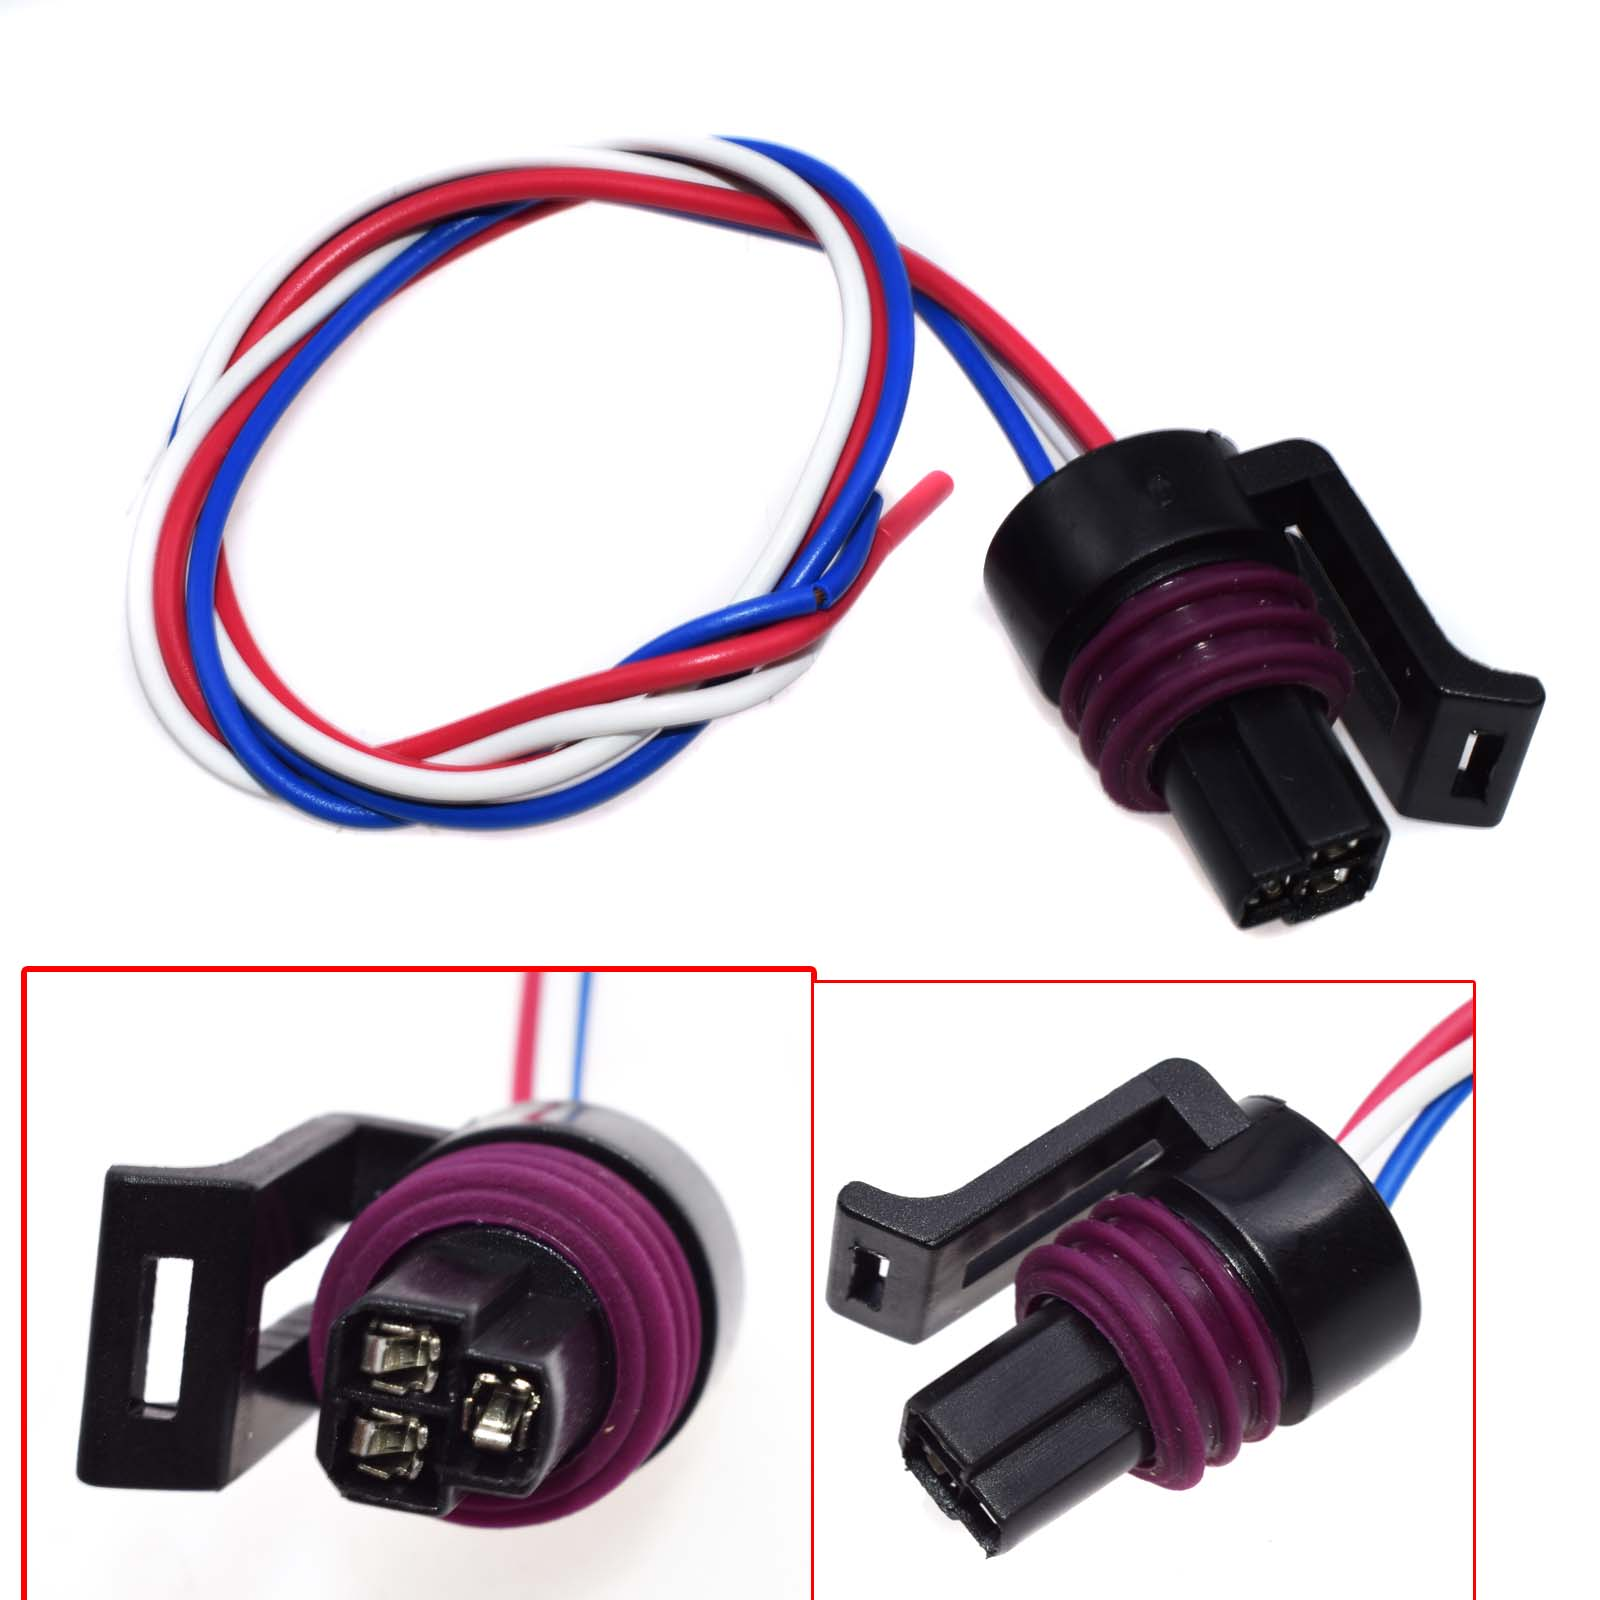 FUEL INJECTOR s824 HARNESS CONNECTOR PIGTAIL FITS JEEP DODGE FORD HYUNDAI MAZDA